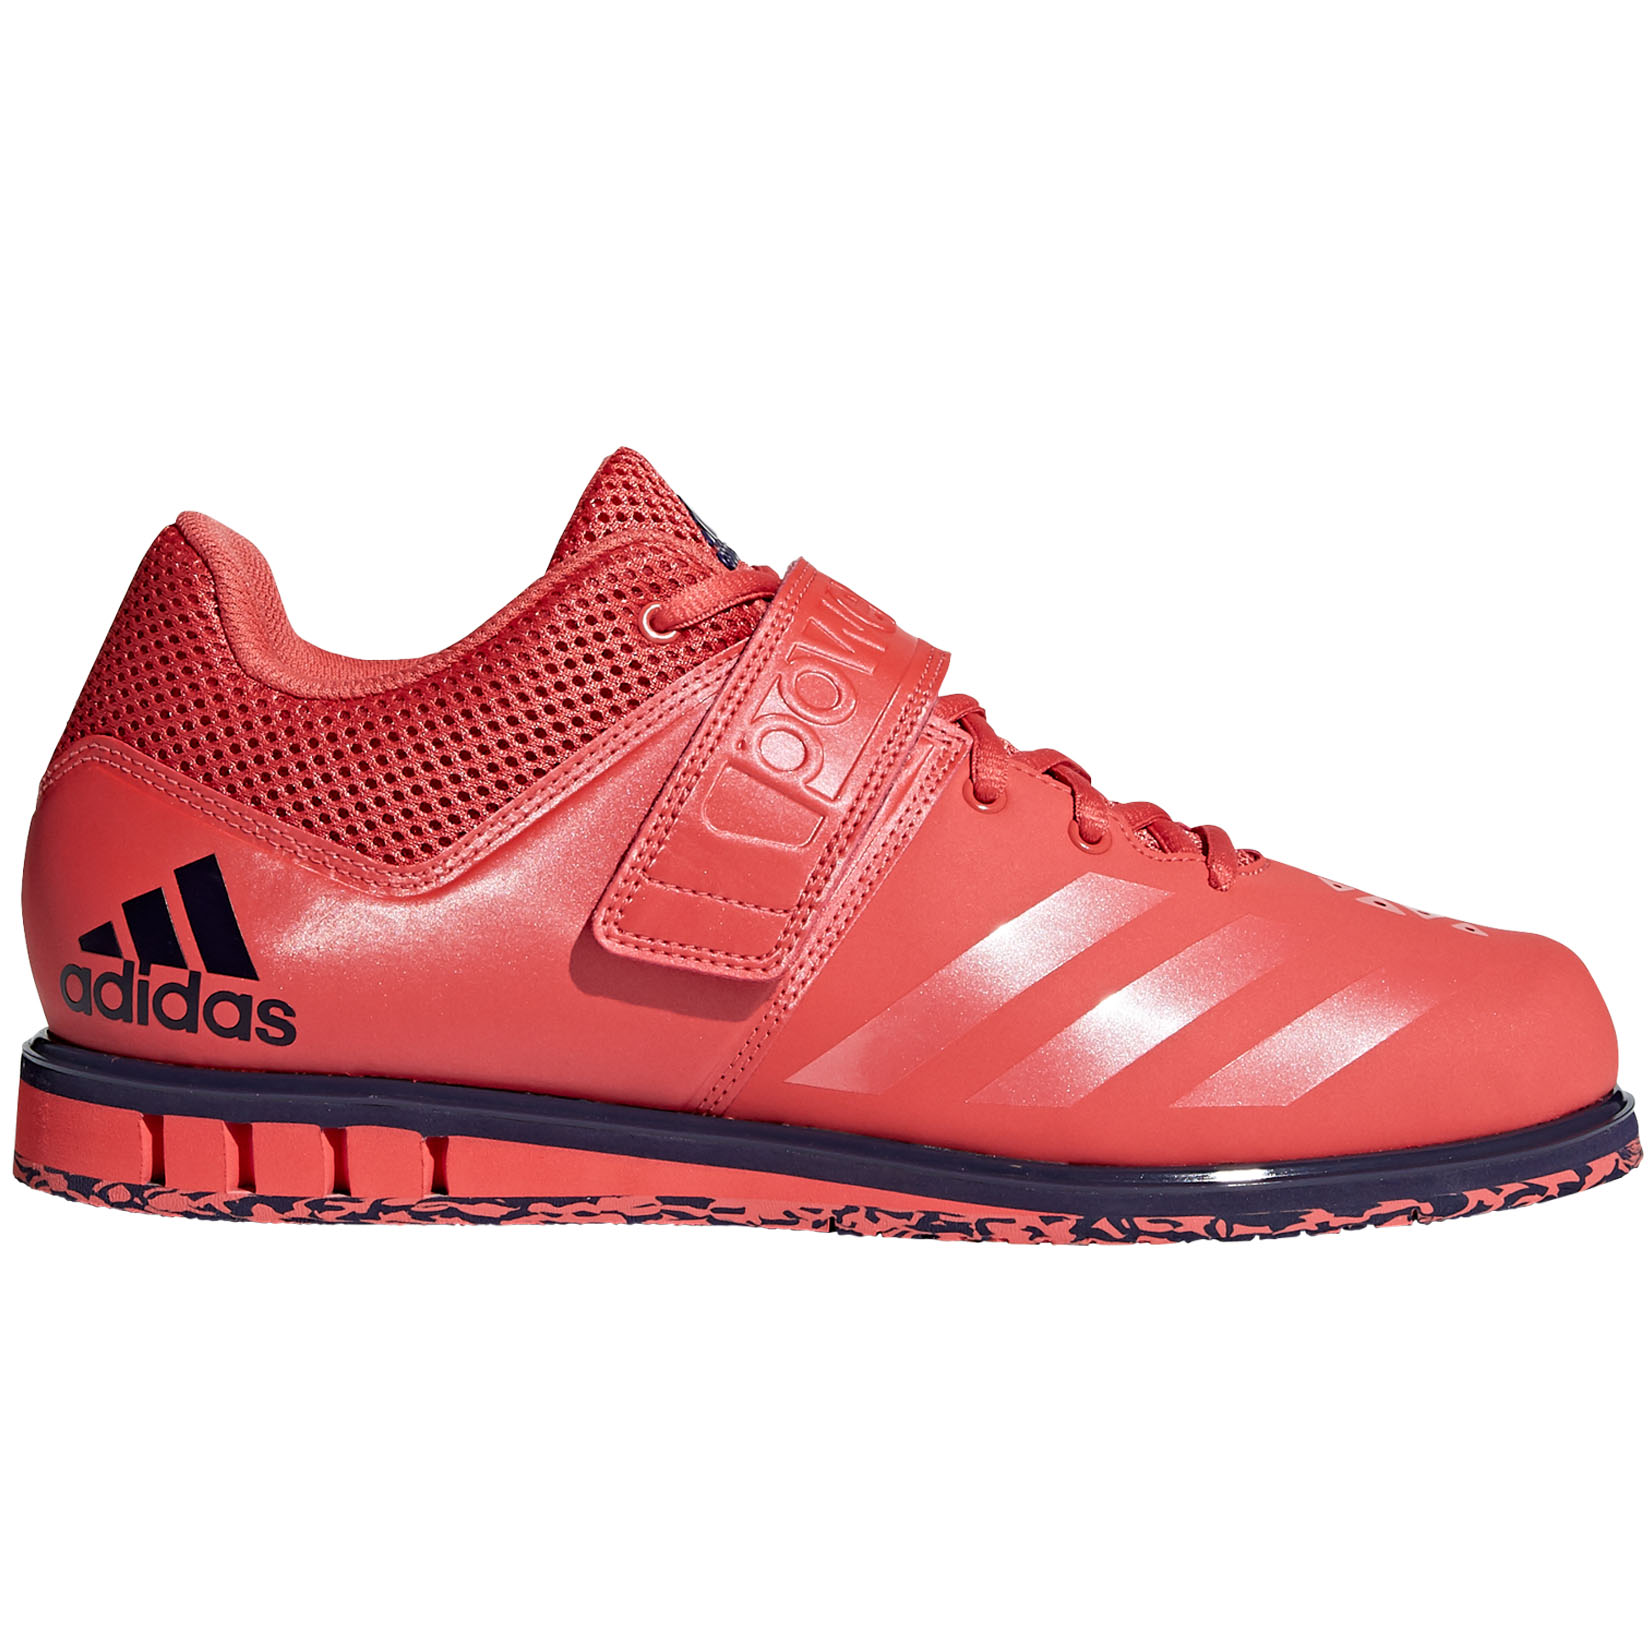 promo code afd9e 32993 Details about adidas Powerlift 3.1 Mens Adult Weightlifting Powerlifting  Shoe Red